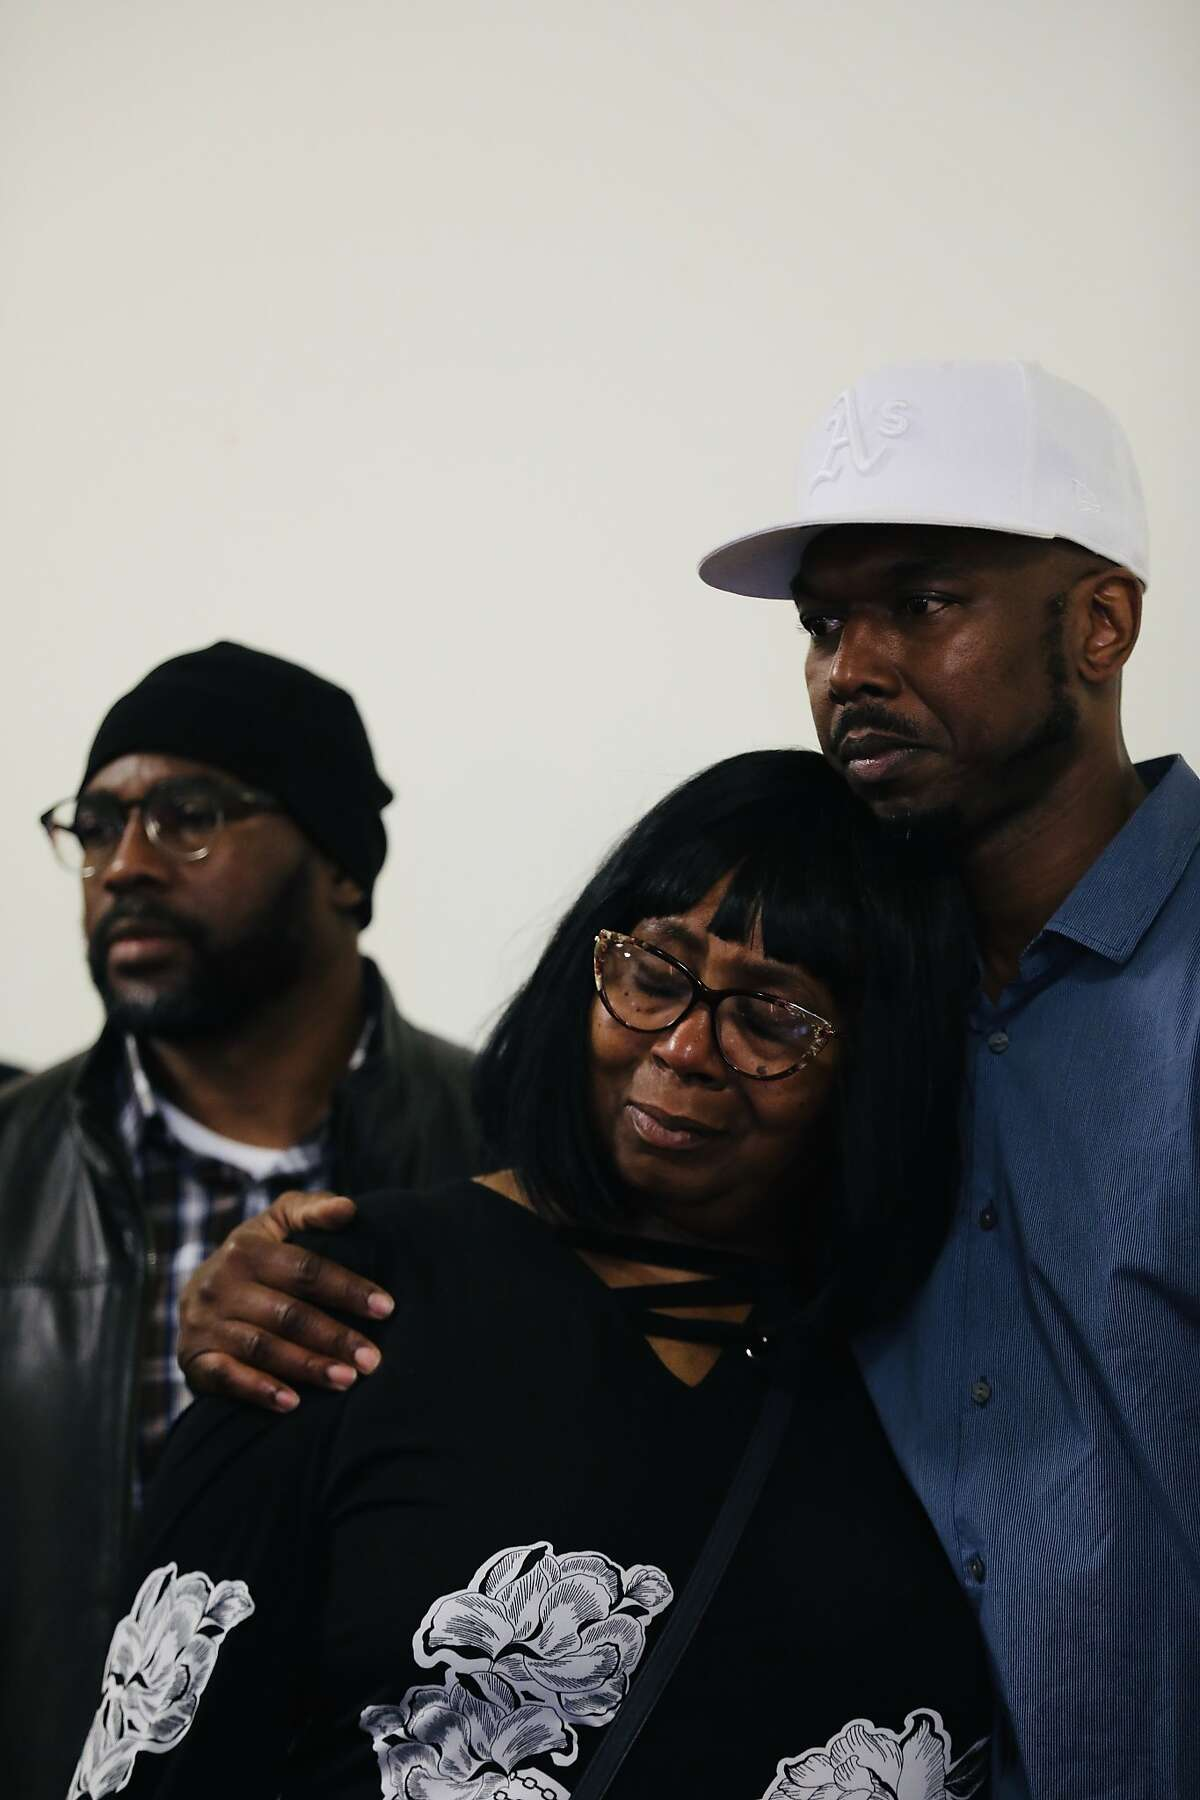 John Jones III, campaign director for Alameda County Fair Chance to Housing Coalition, hugs Ms. Towanda Sherry, after she shared her story of not being to provided housing to her formally incarcerated son, the late Simbarashe Sherry, during a press conference hosted by the Alameda County Fair Chance Housing Coalition, led by Just Cities, at Oakland City Hall in Oakland, Calif., on Tuesday, January 21, 2020. California's system of mass incarceration has disproportionately targeted people of color and failed to provide them with the resources and support to succeed after their release. The Fair Chance Housing Coalition has been fighting to remove the structural barriers that prevent formerly incarcerated people from accessing housing; Oakland's ordinance is an essential first step toward restorative justice.